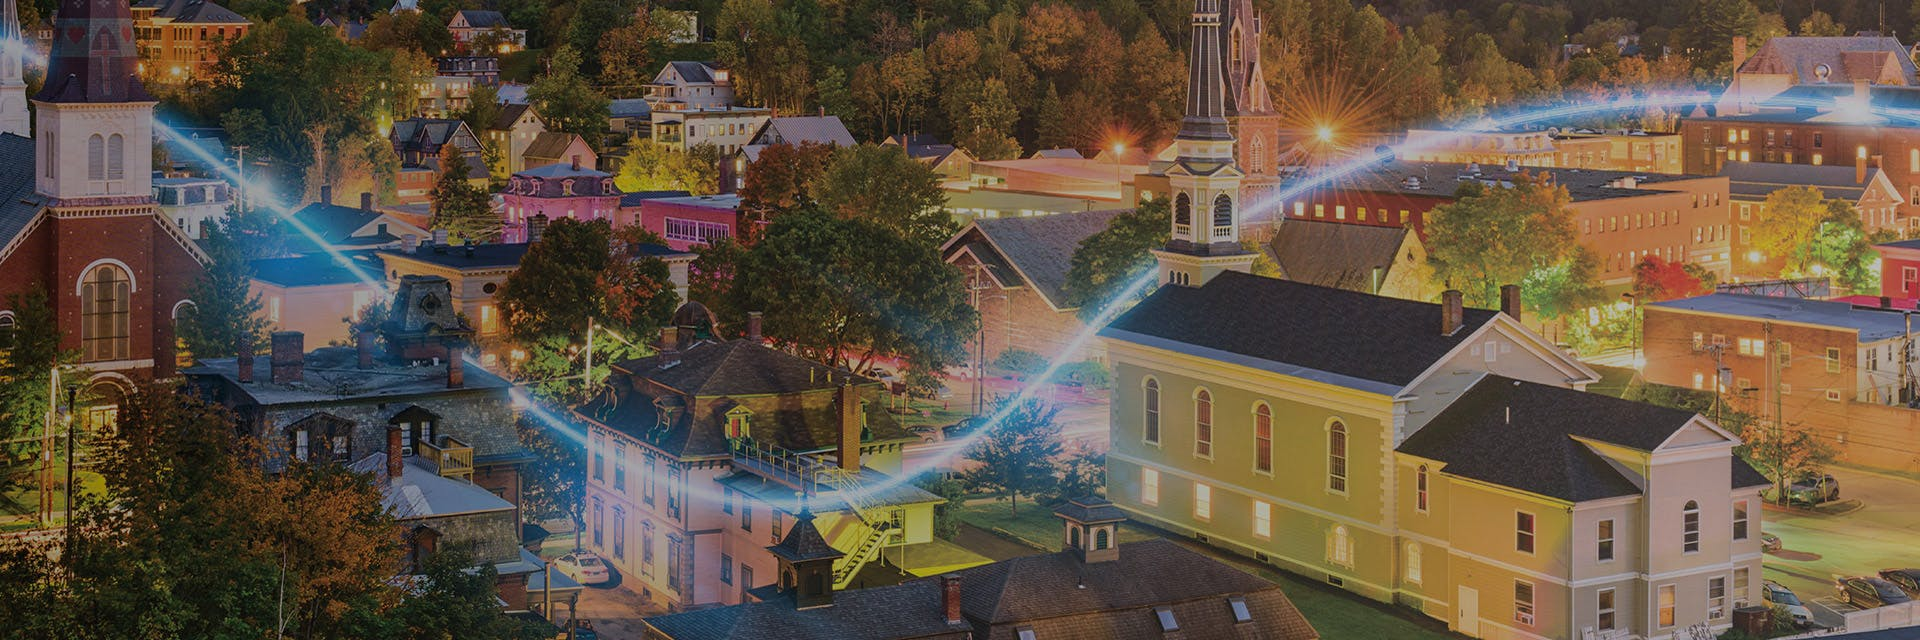 16x10-chattanooga-town-background.jpg